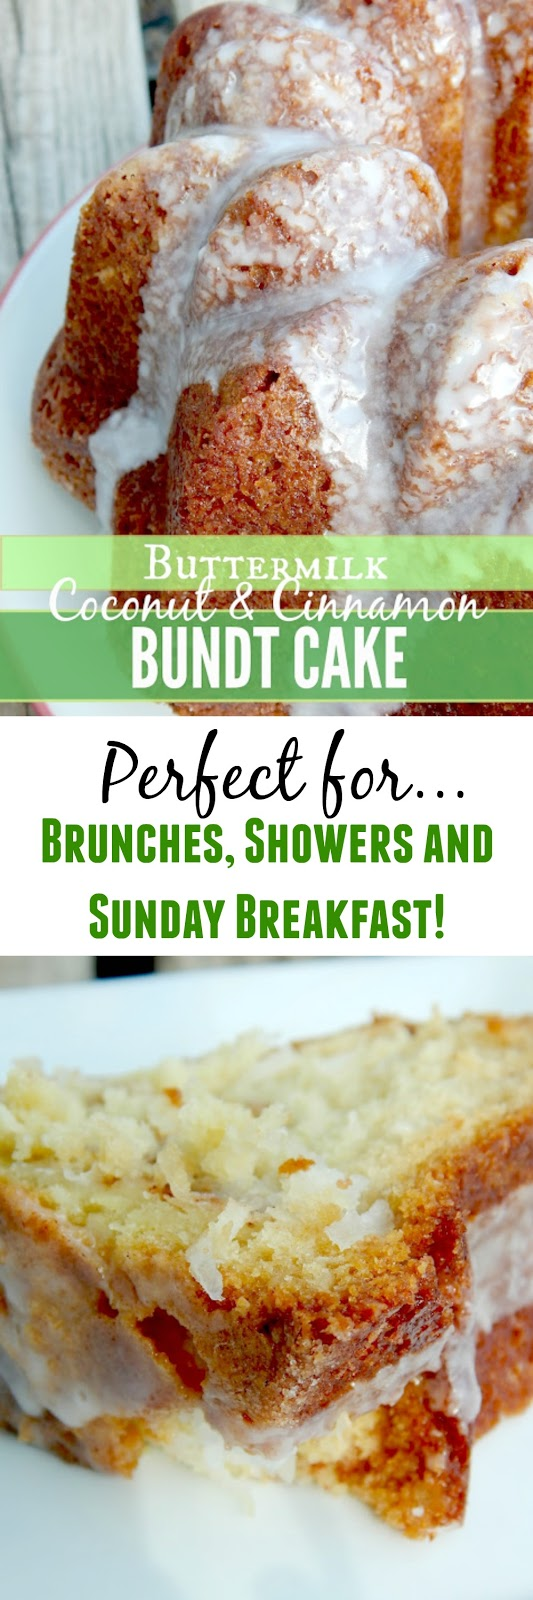 Coconut & Cinnamon Buttermilk Bundt Cake...rich, moist and perfect for brunches, Sunday breakfasts, wedding showers and more! (sweetandsavoryfood.com)